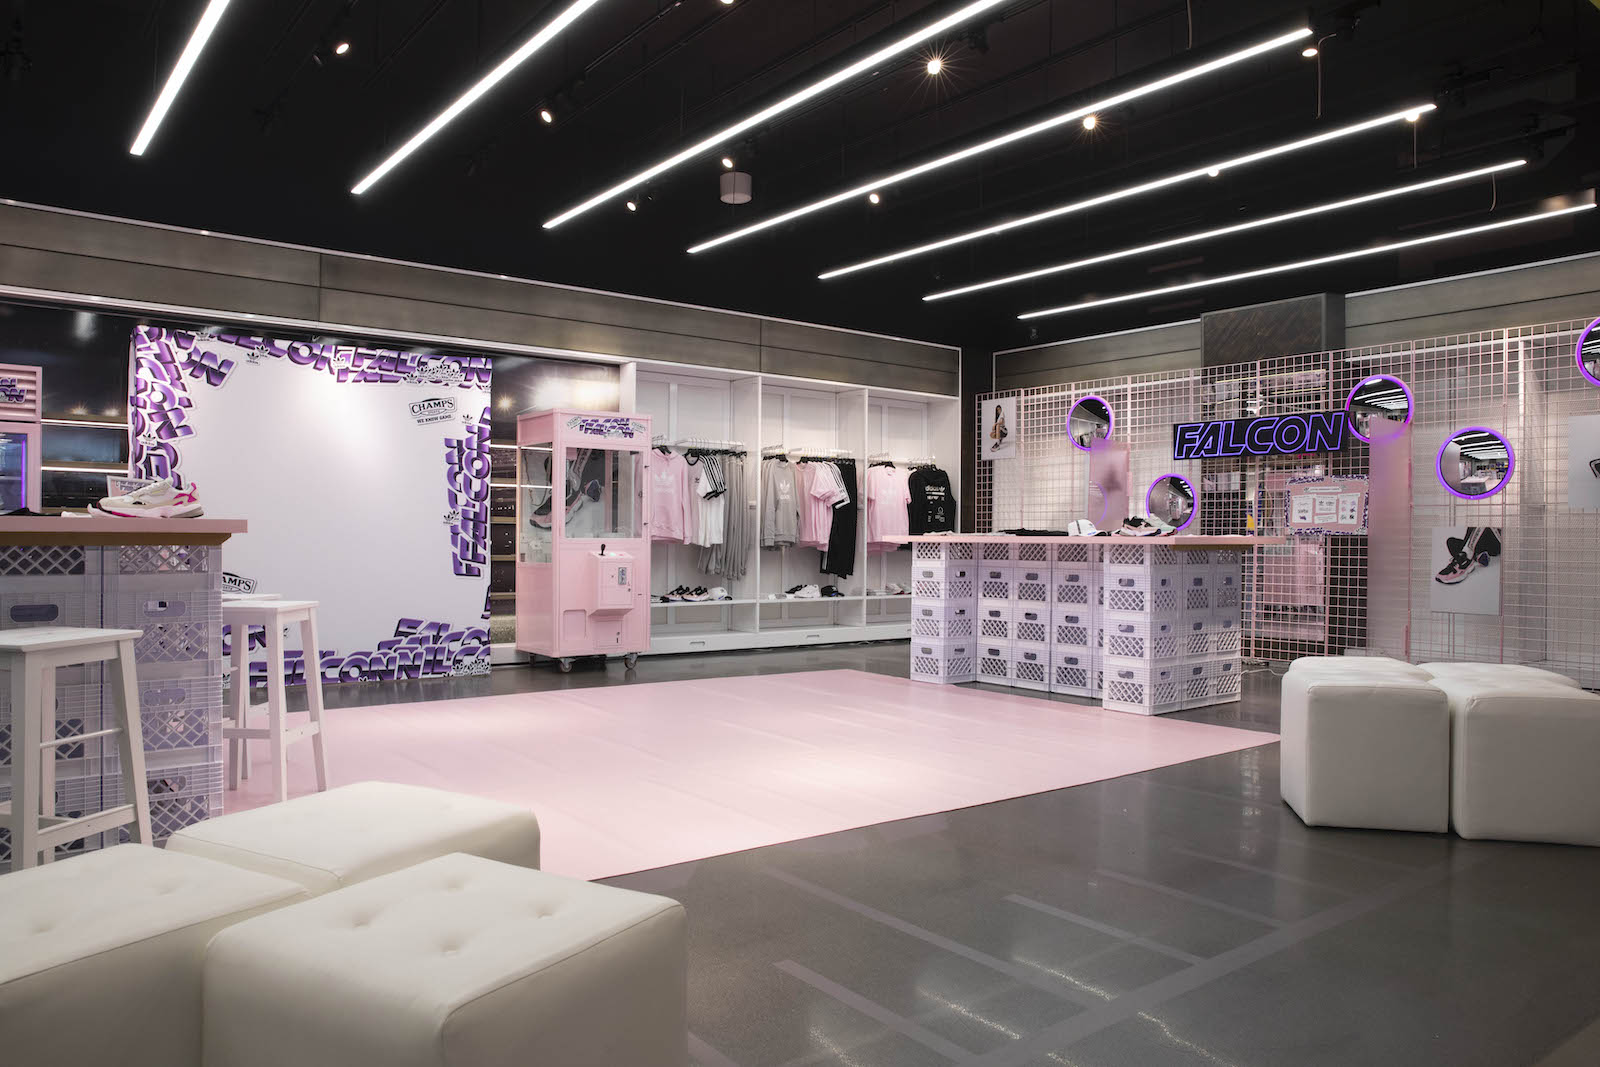 Falcon retail space with a photo op backdrop covered in large purple gradient Falcon stickers, a pink claw machine, clothing display wall , and product display counters show pairs of Falcon sneakers.